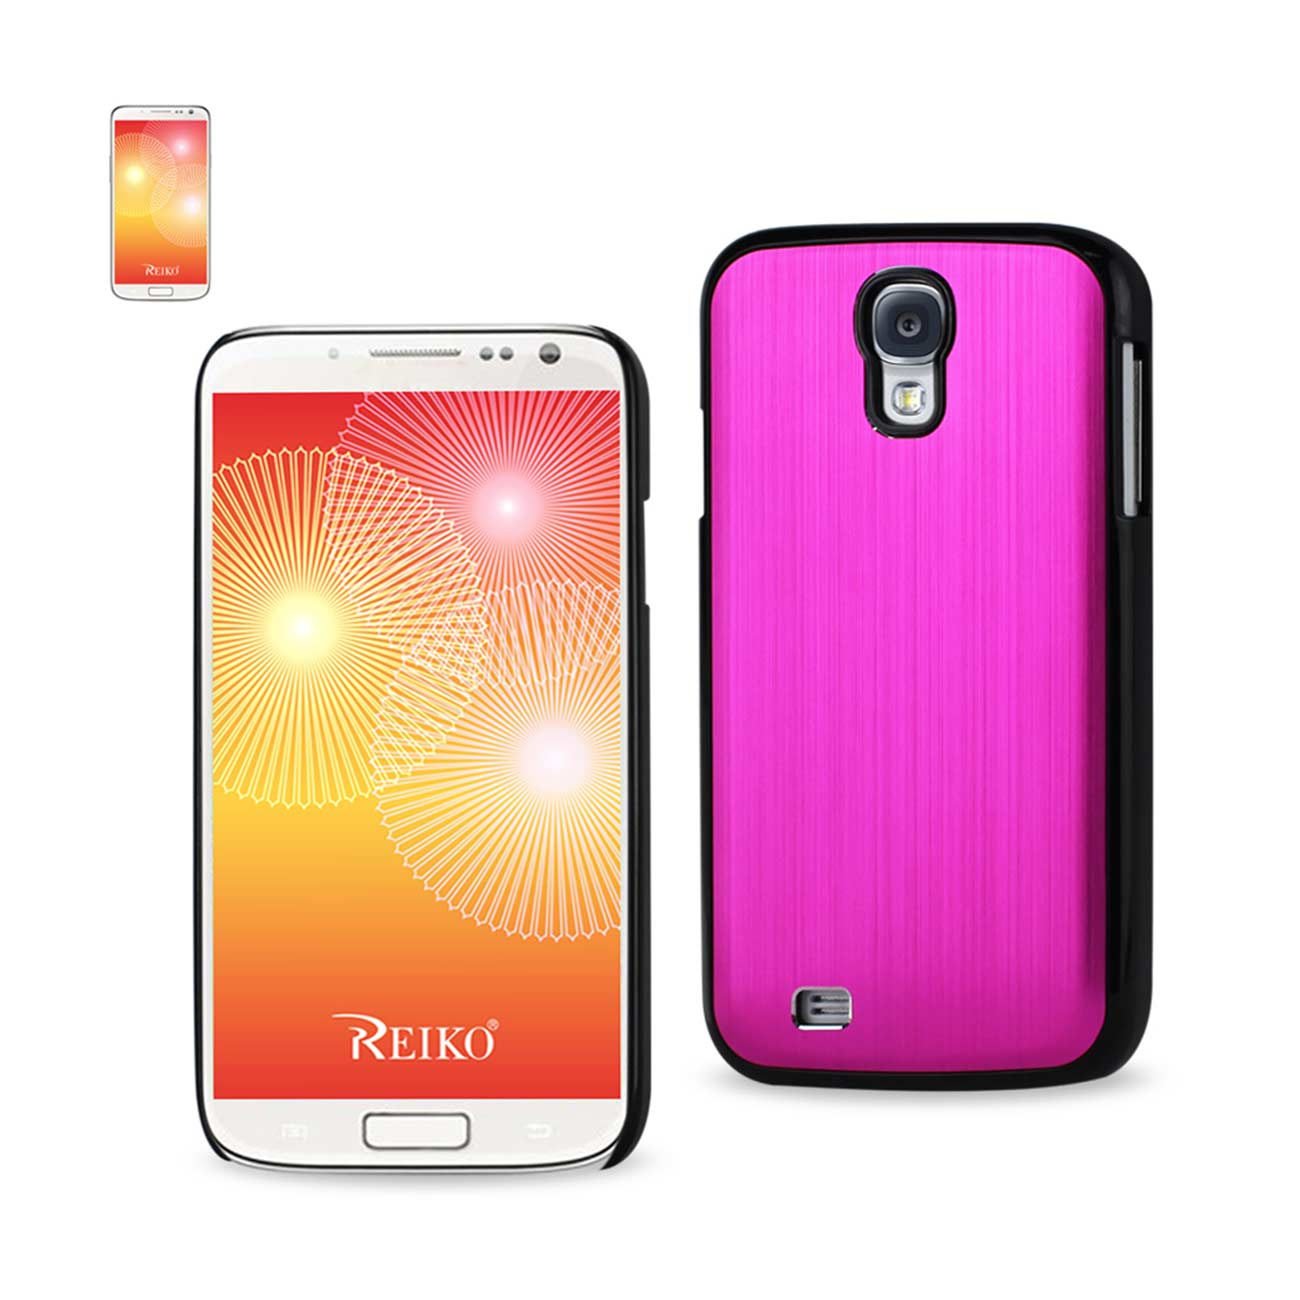 Reiko Wireless Aluminum Varnish Case for Samsung Galaxy S4 - Hot Pink